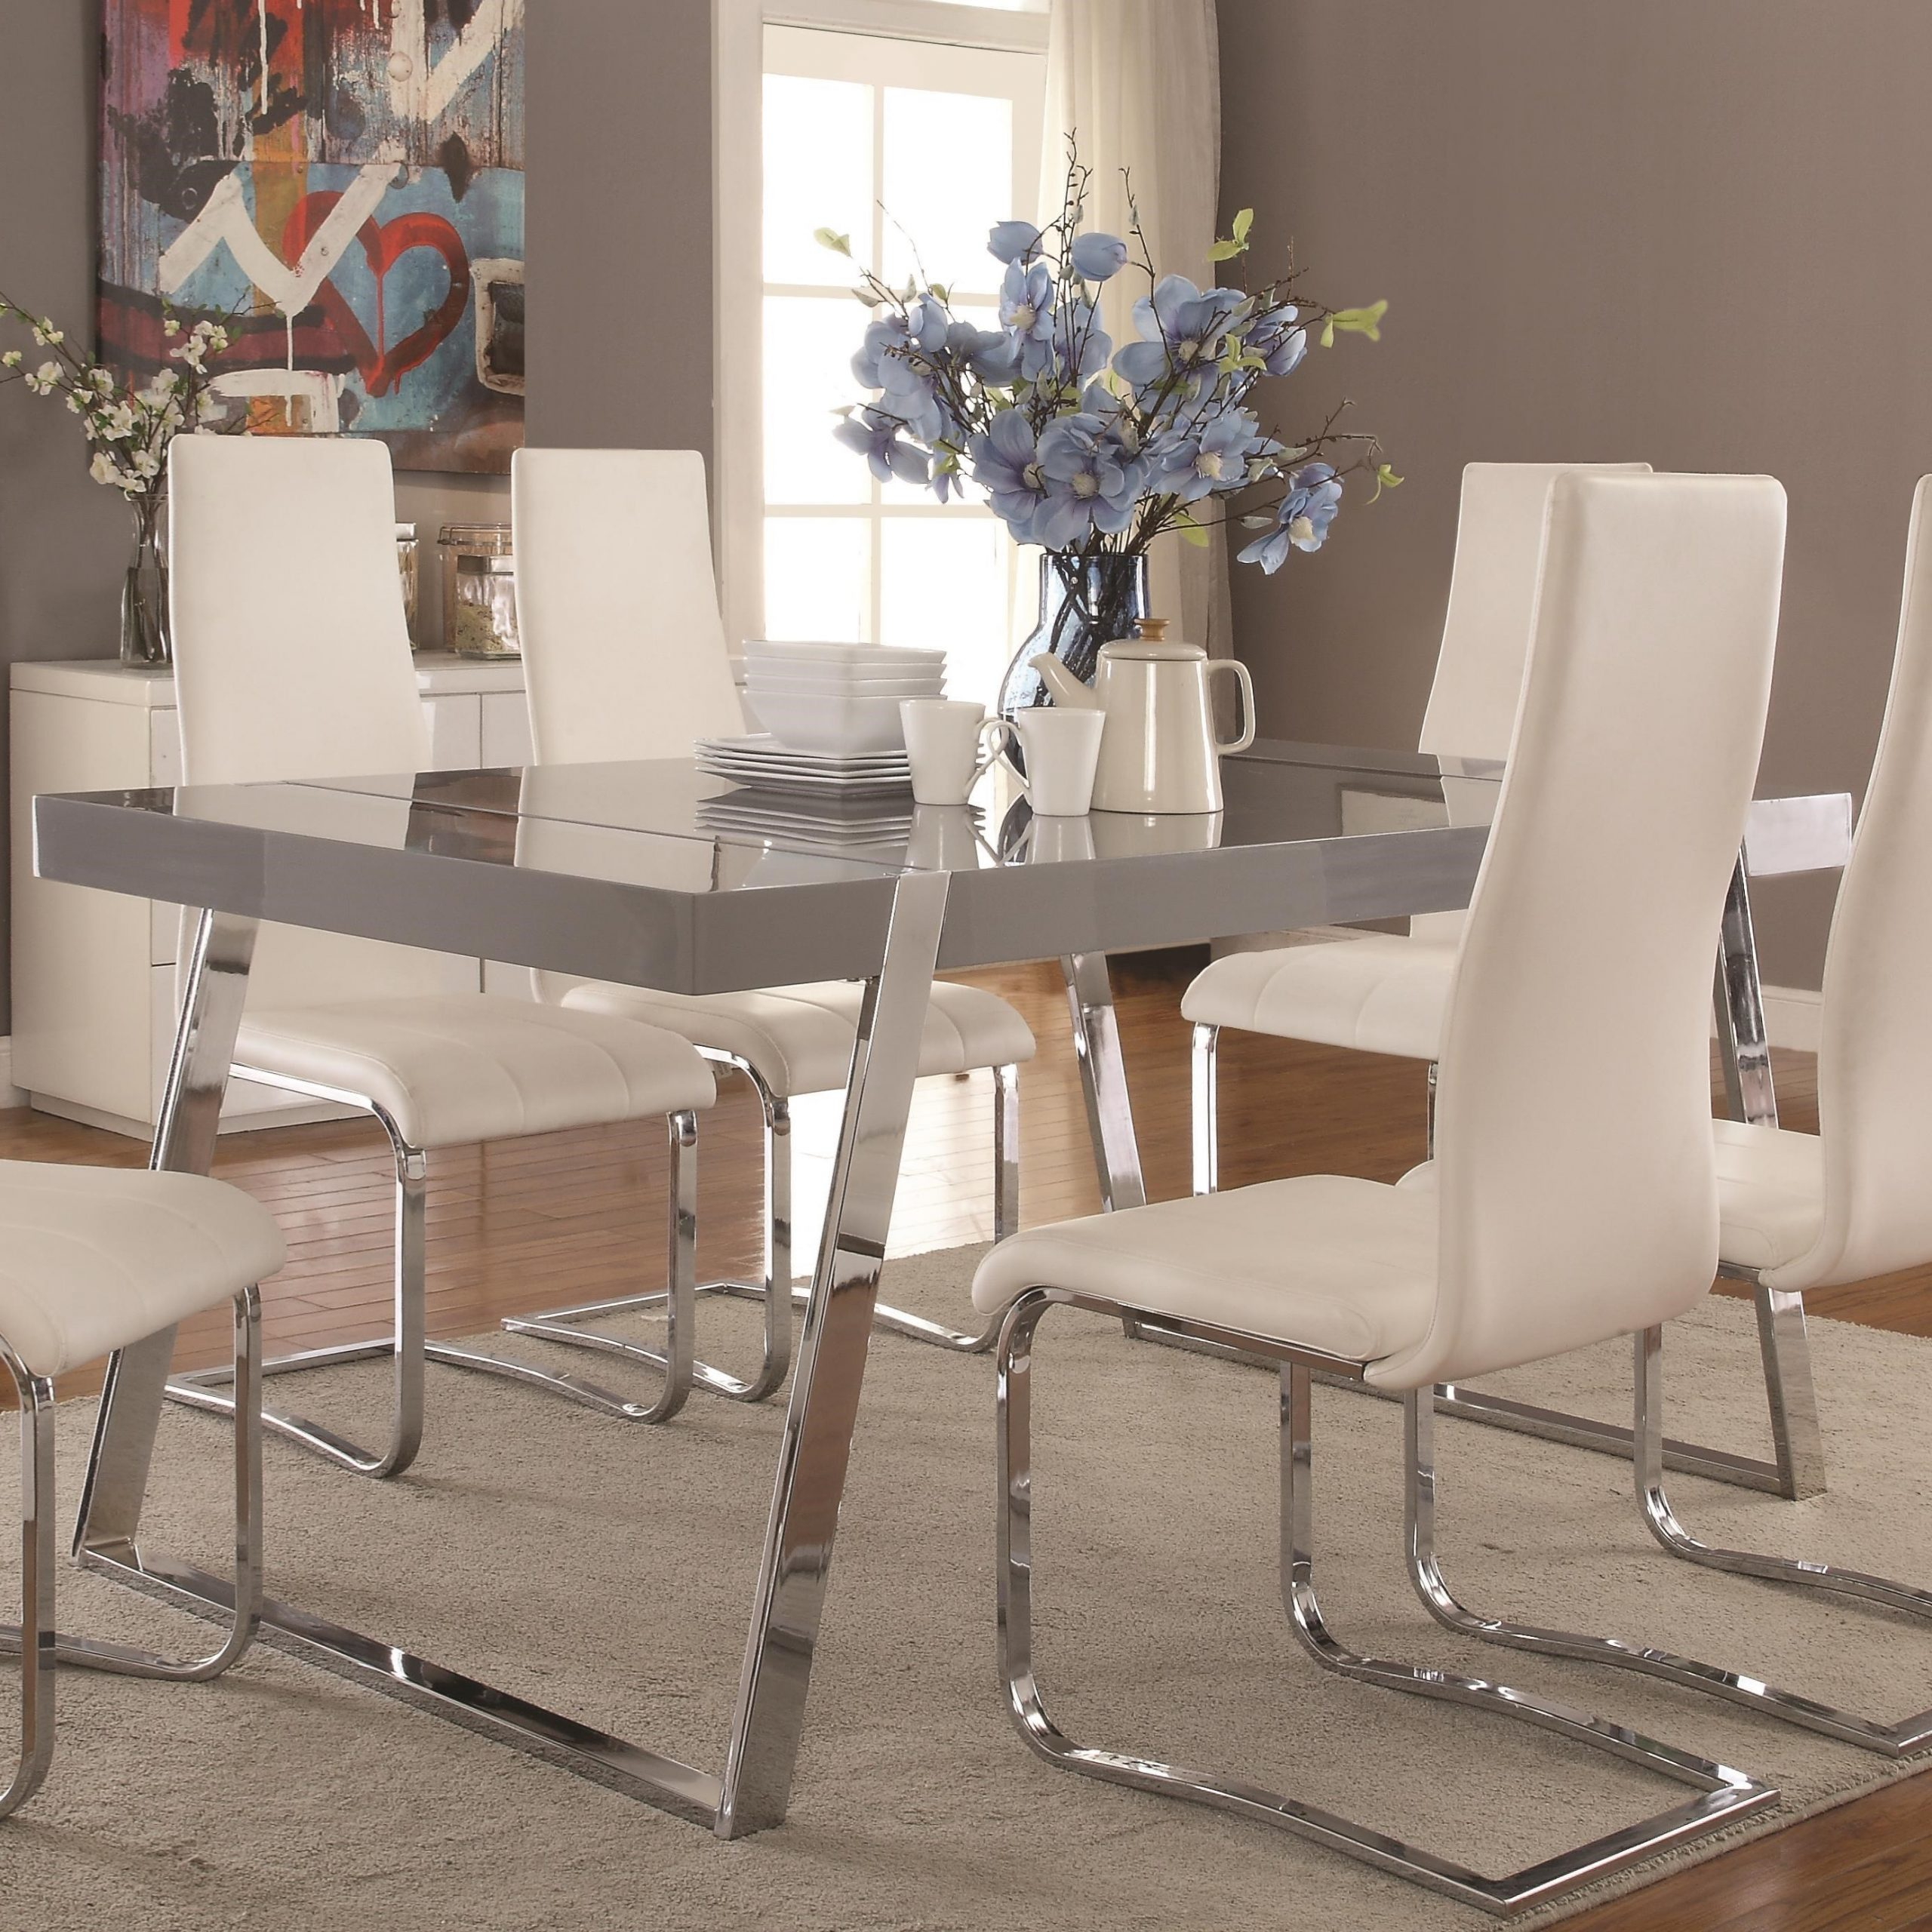 Newest Giovanni Contemporary Rectangular Dining Table Intended For Contemporary Rectangular Dining Tables (View 6 of 25)